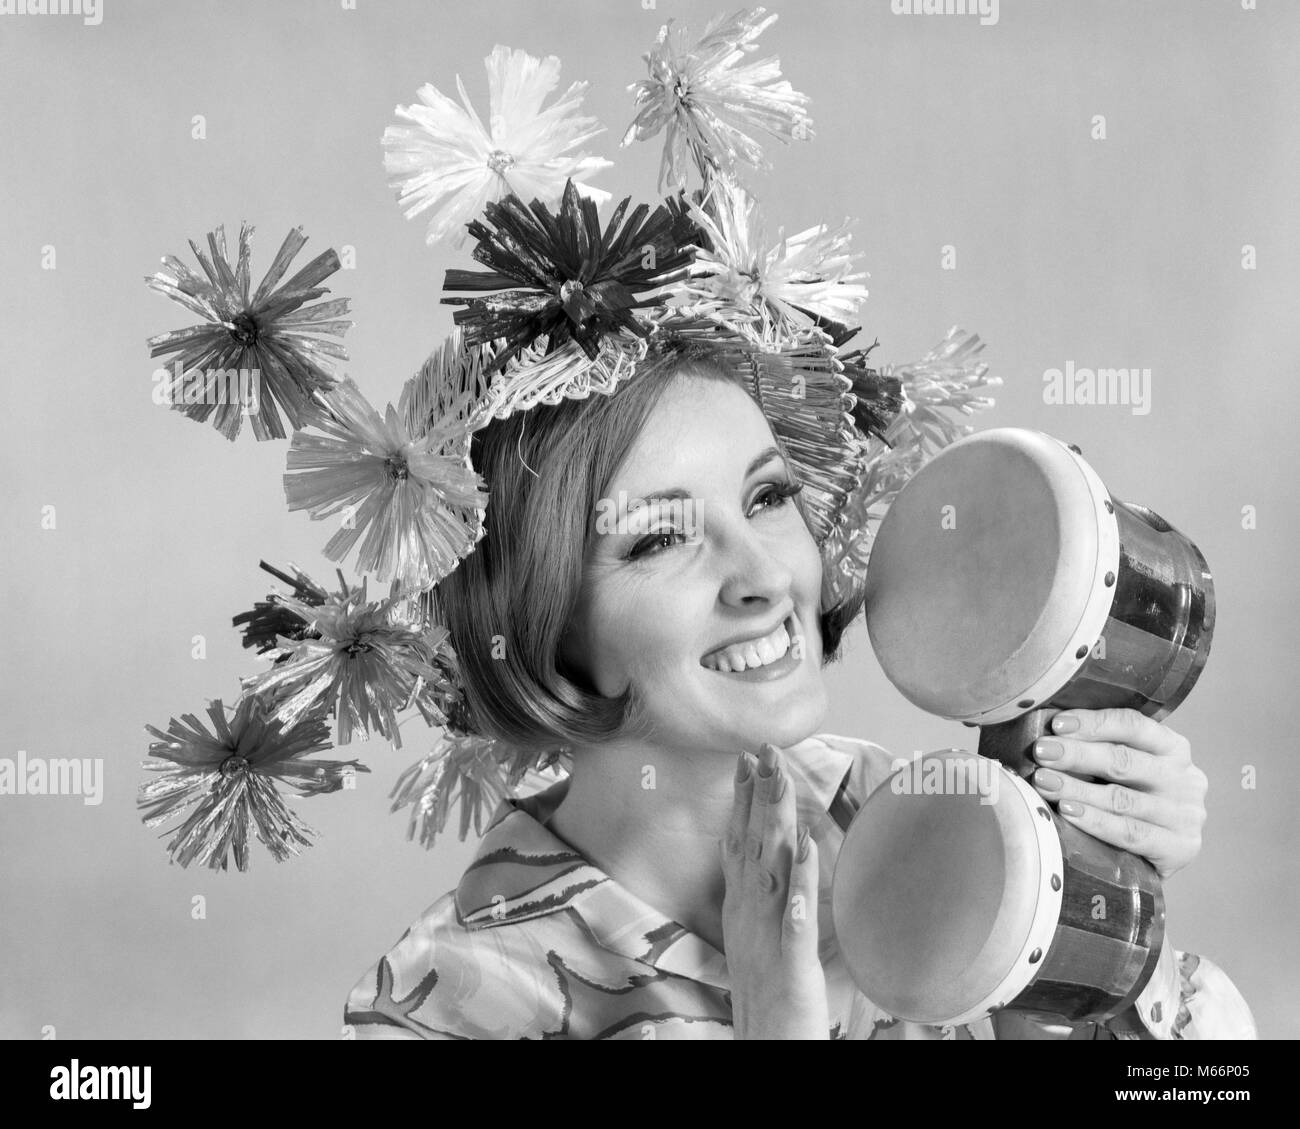 1960s SMILING WOMAN WAEARING GOOFY STRAW HAT PLAYING BONGO DRUMS - m7415 HAR001 HARS LADIES DRUMS CARIBBEAN INDOORS - Stock Image